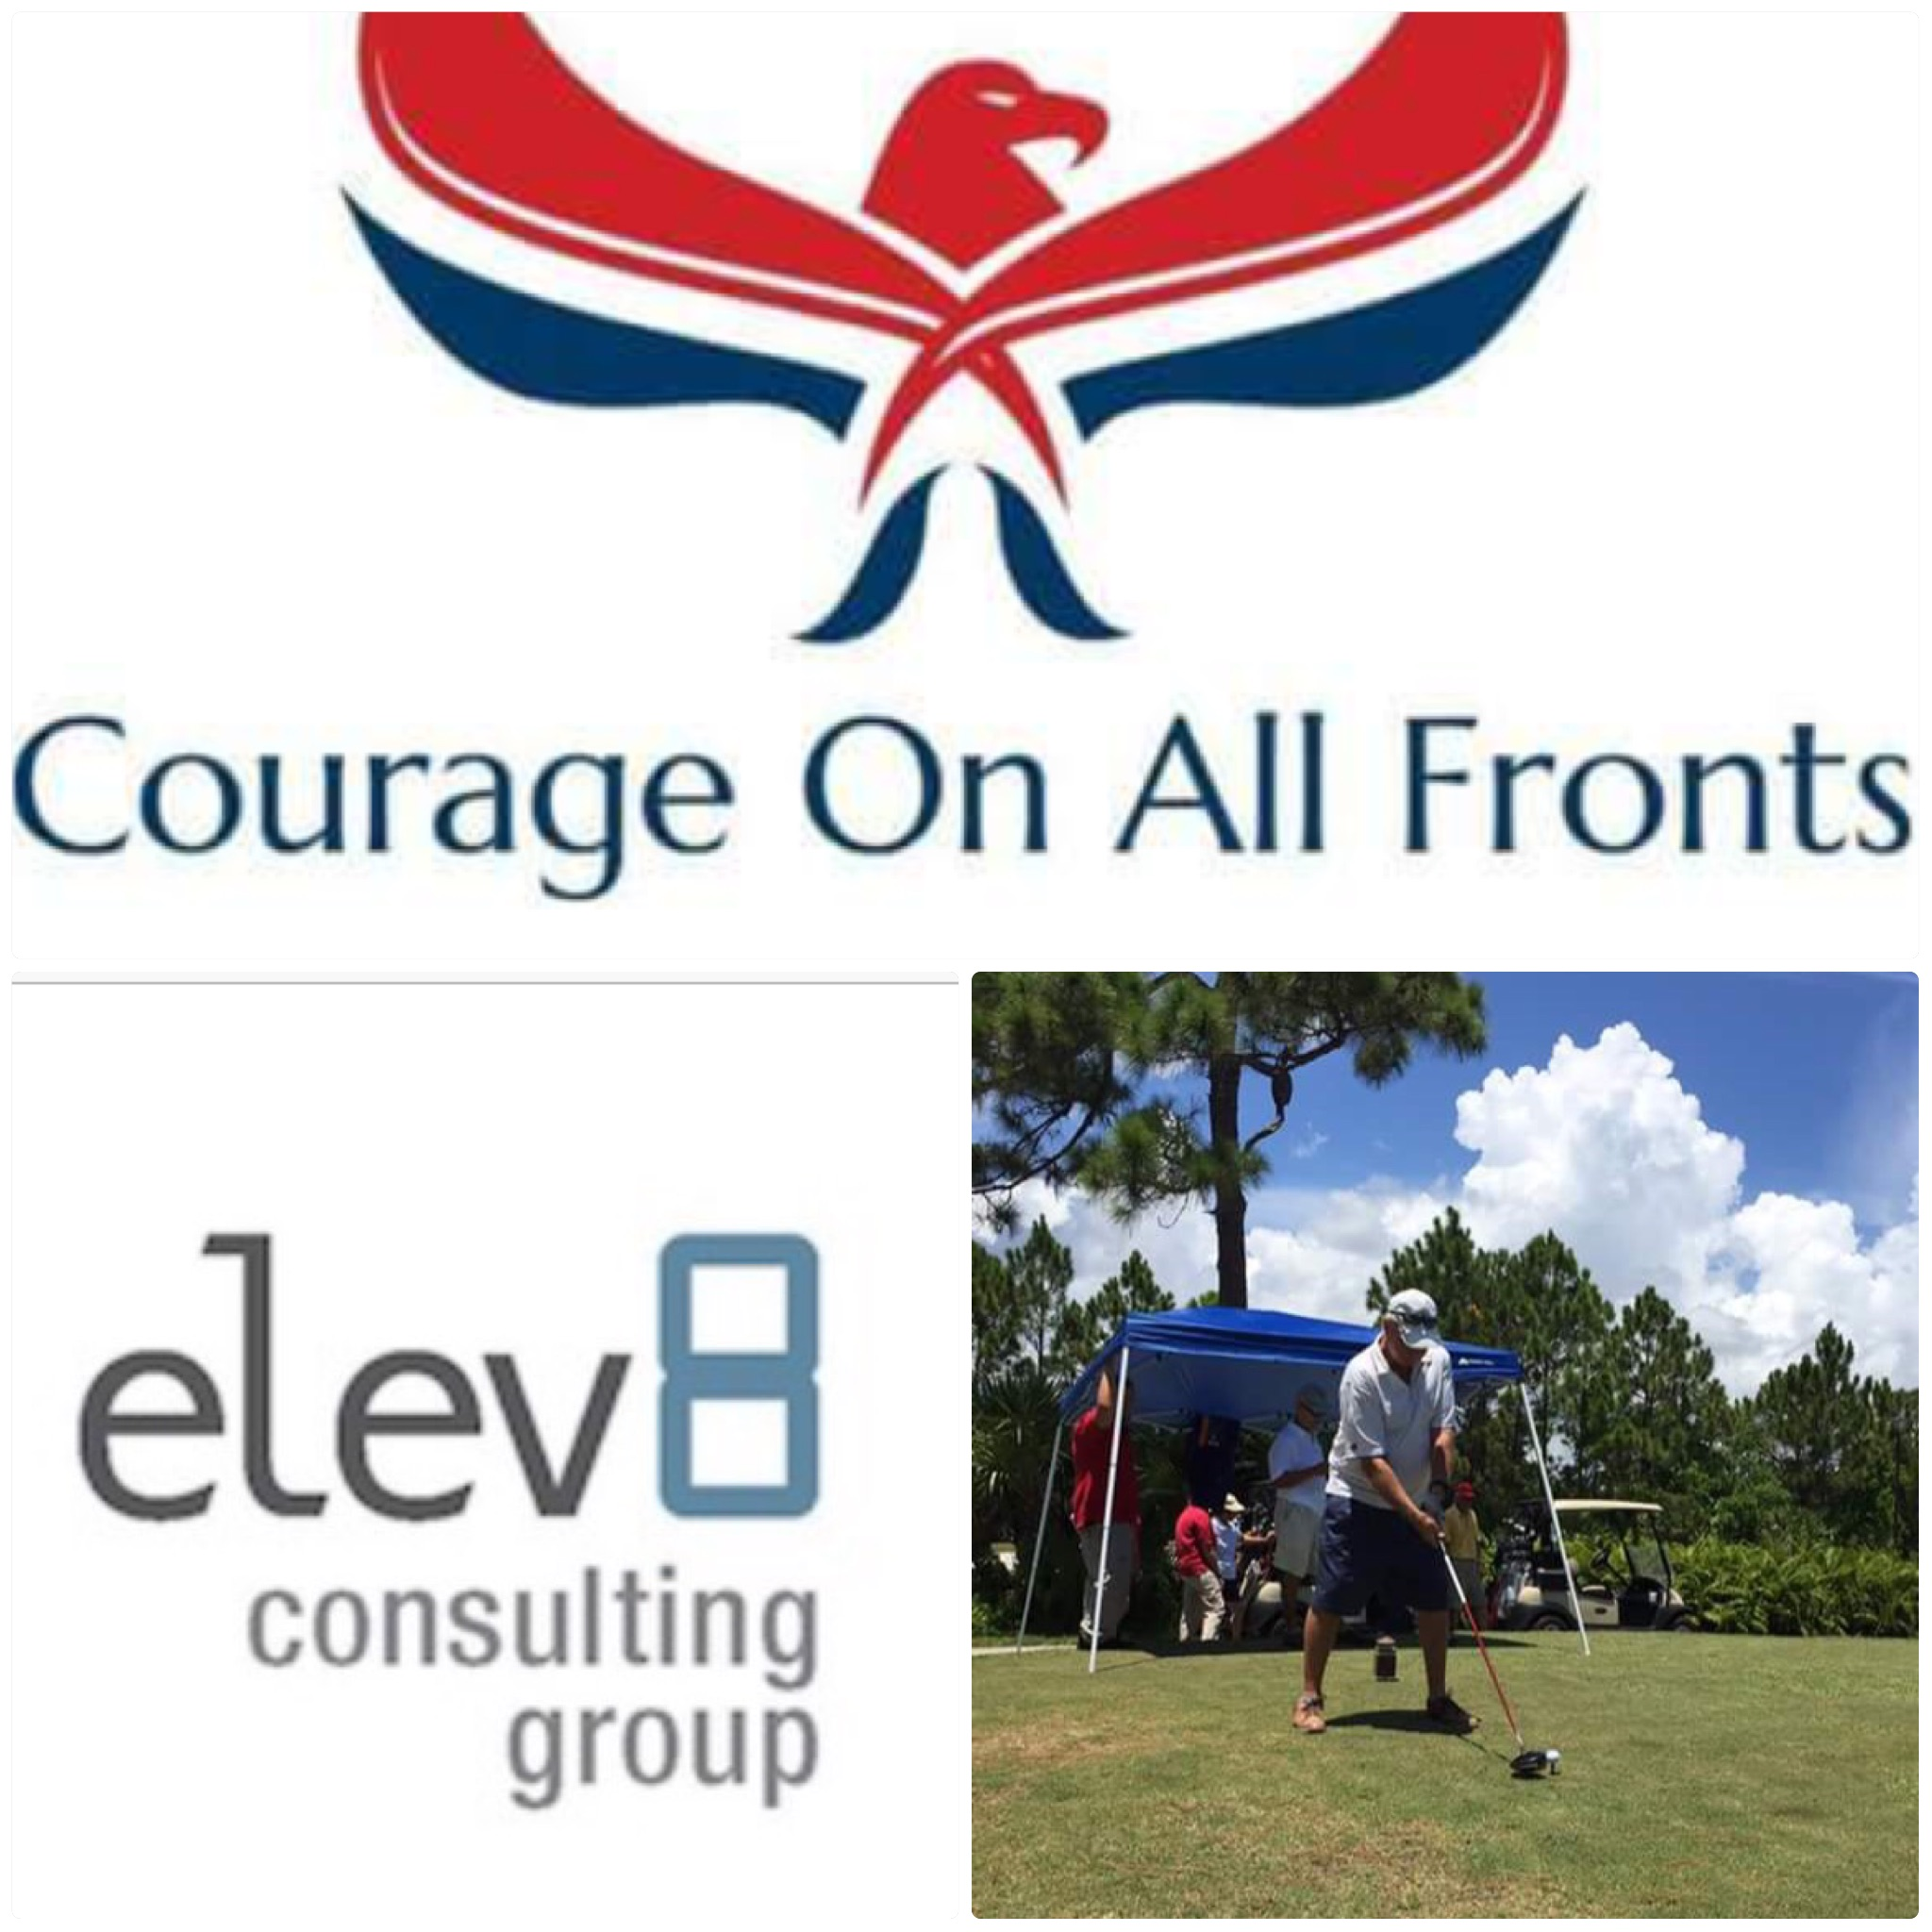 Elev8 Consulting Group Courage on All Fronts